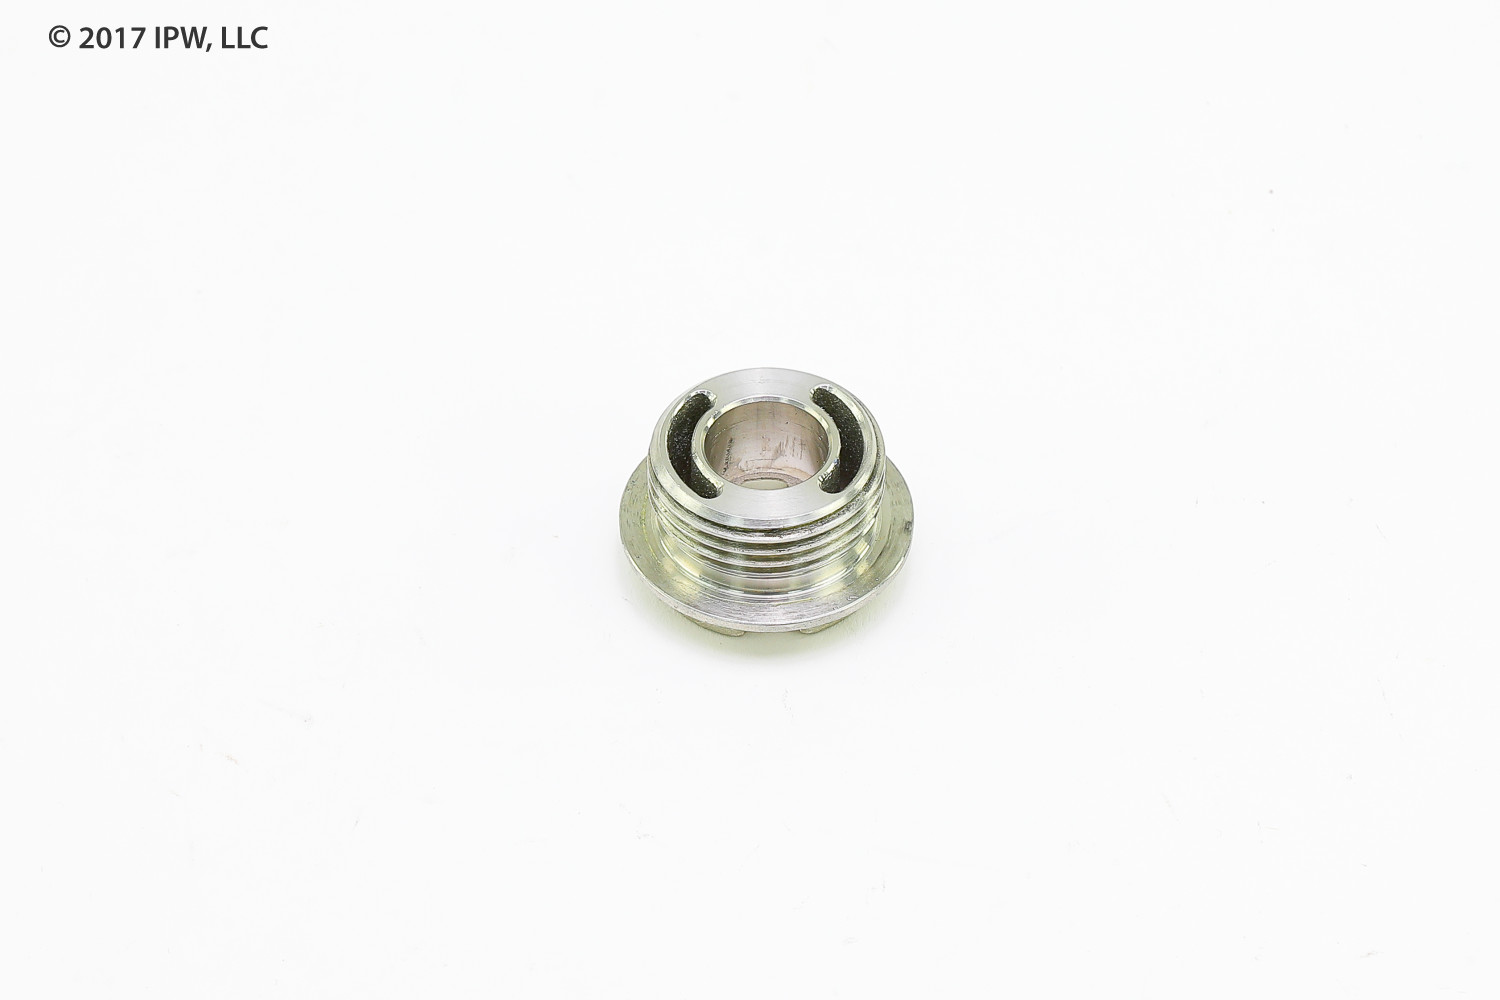 Cla-Val 2804201J COVER BEARING